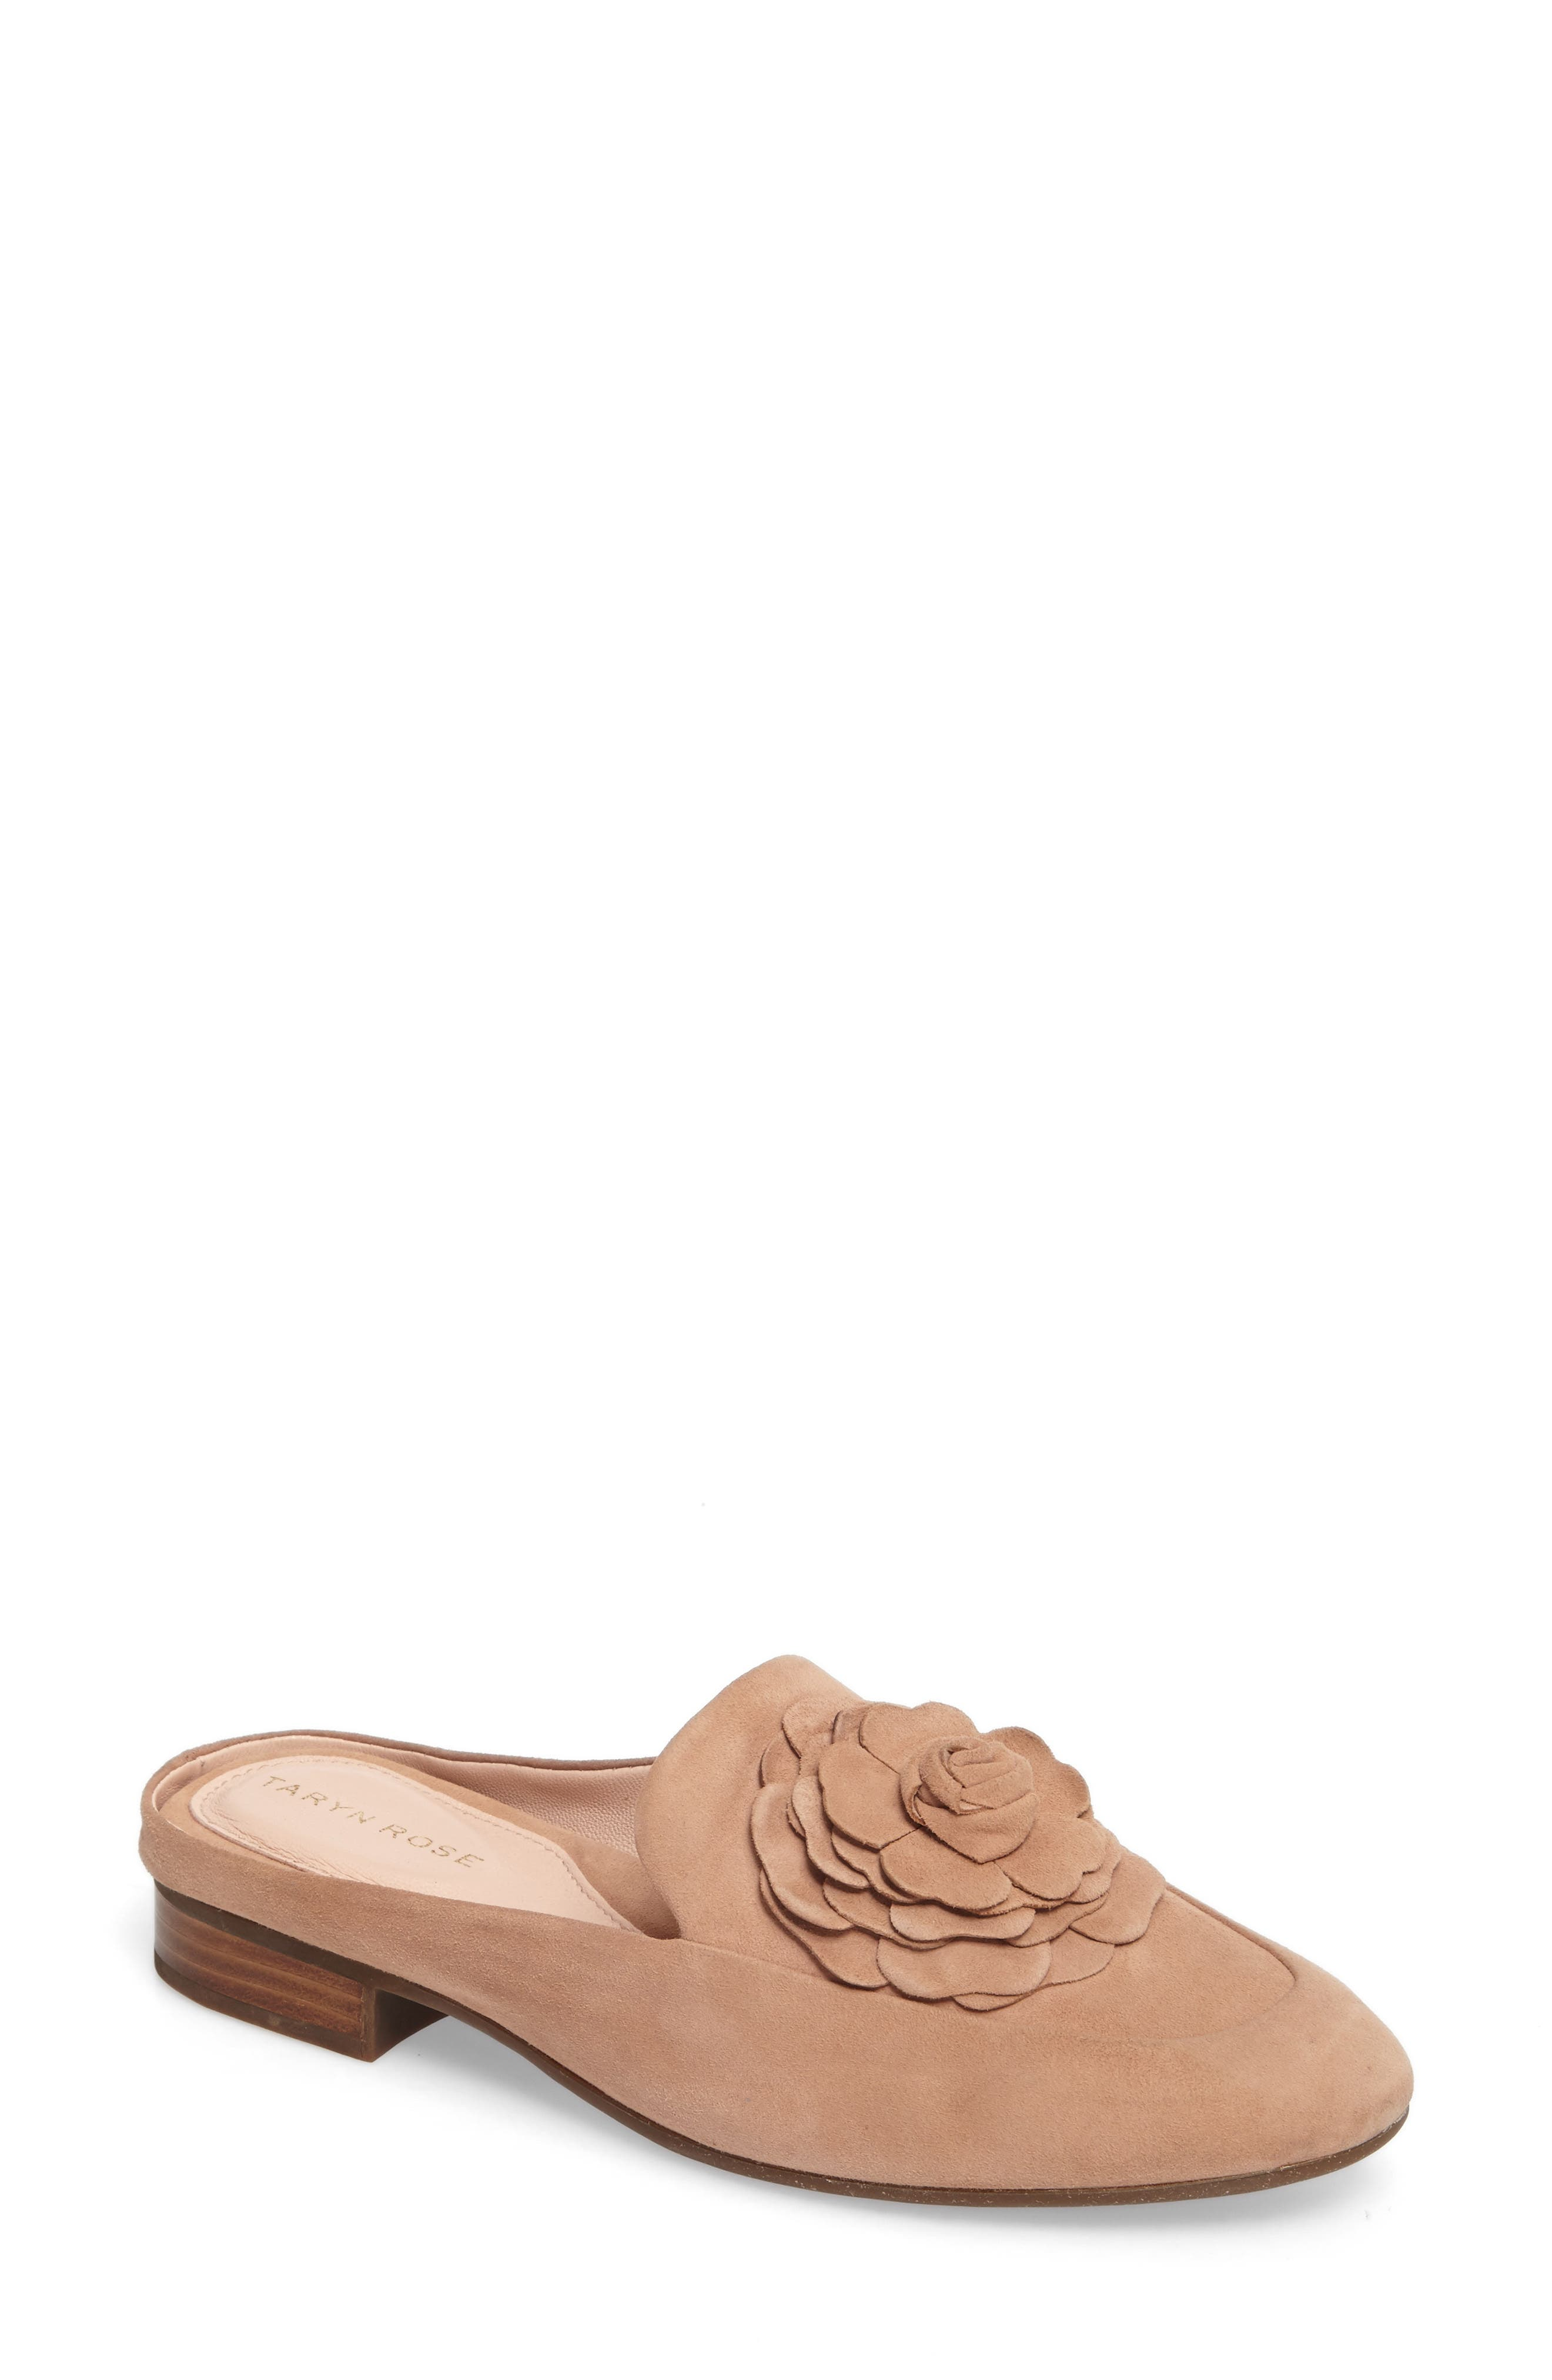 Taryn Rose Dimensional Flower Mule (Women)